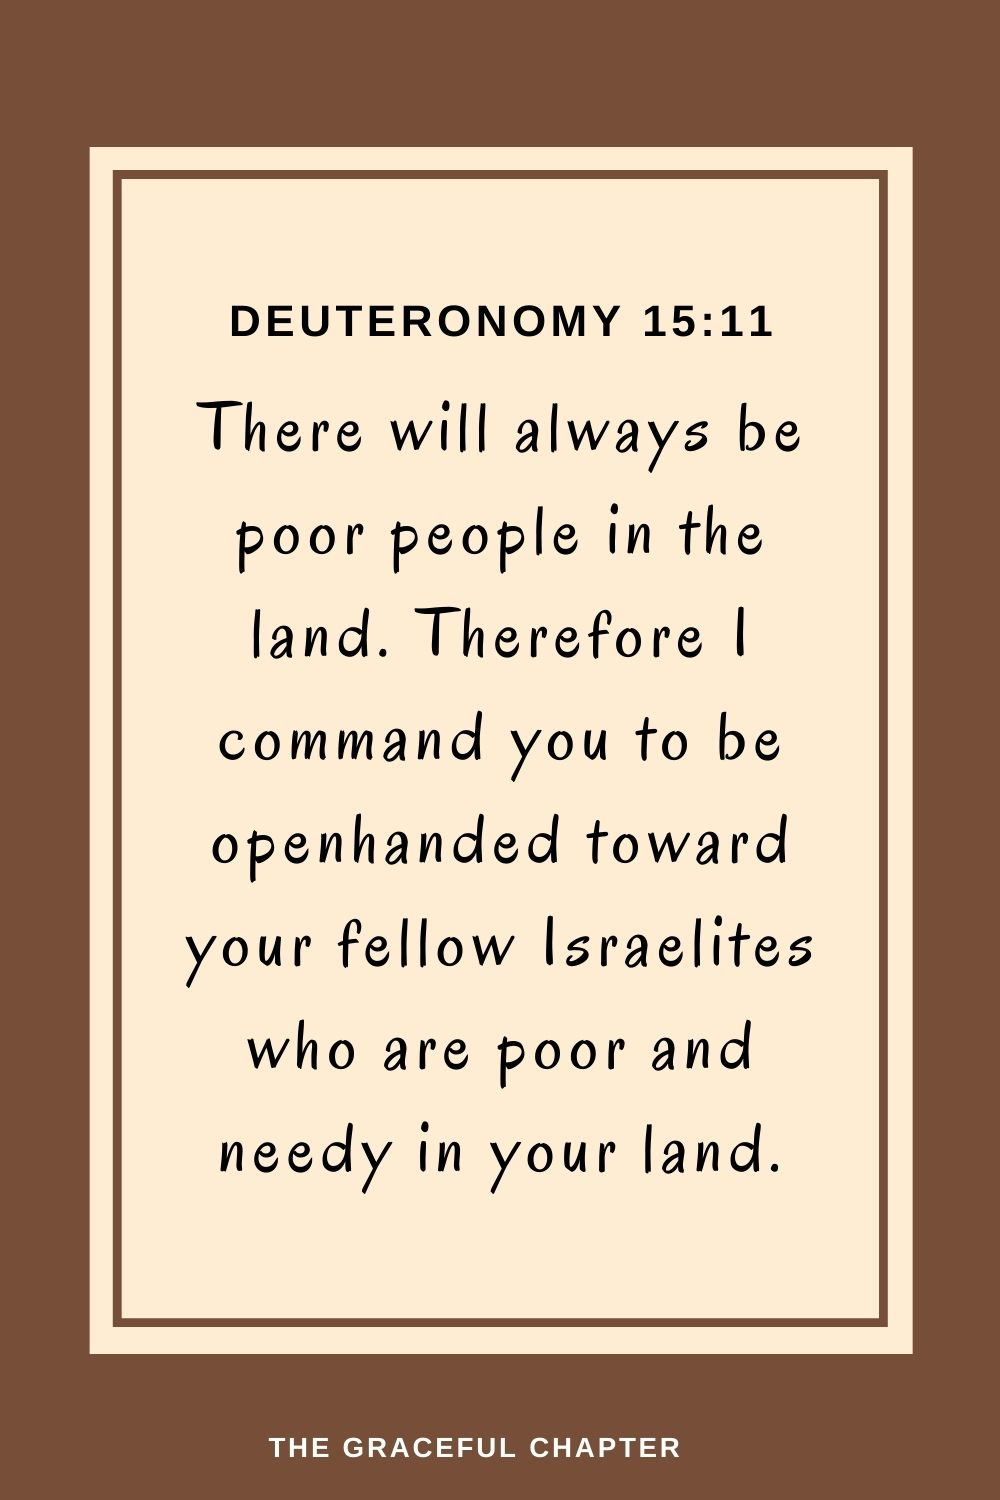 There will always be poor peoplein the land. Therefore I command you to be openhanded toward your fellow Israelites who are poor and needy in your land. Deuteronomy 15:11